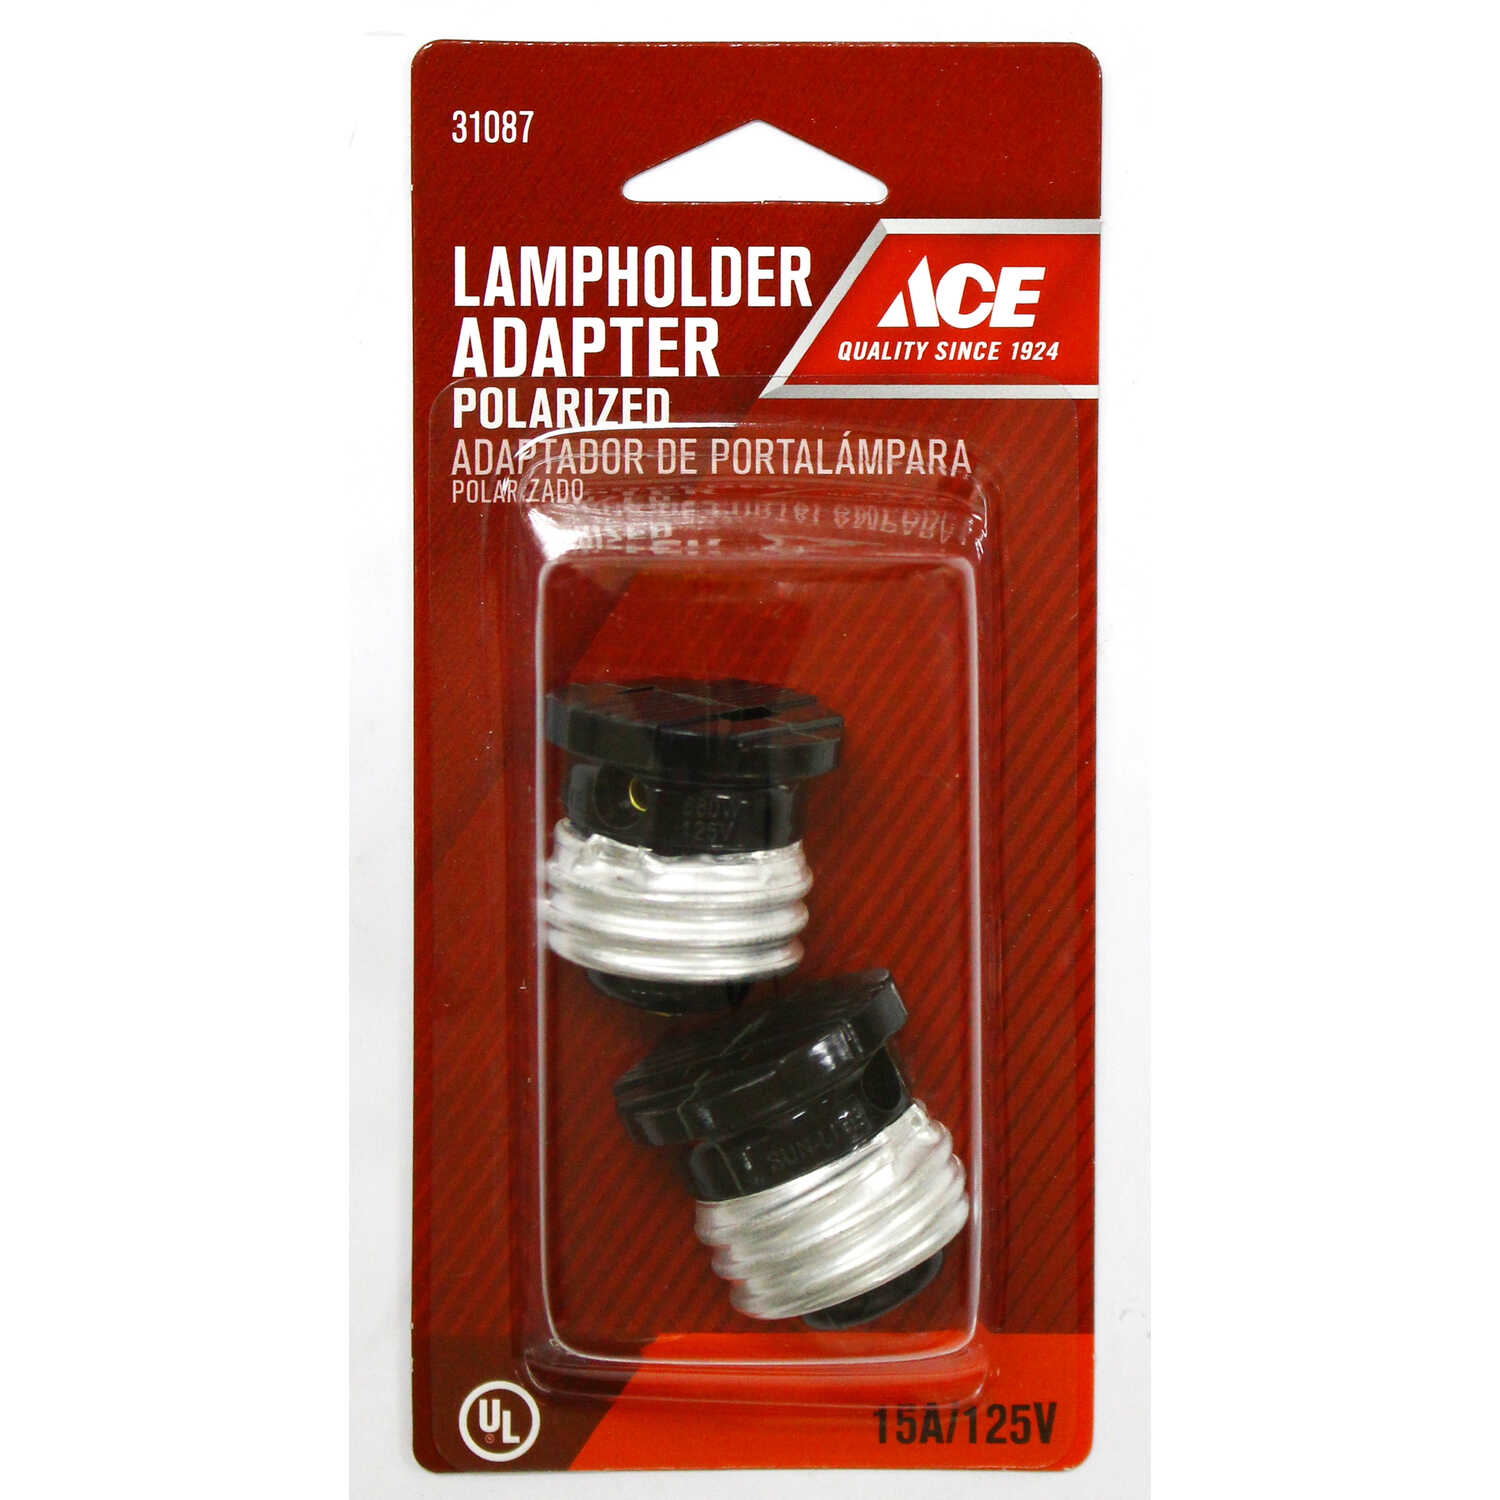 Ace  Polarized  1  Polarized Socket Adapter  2 pk Surge Protection